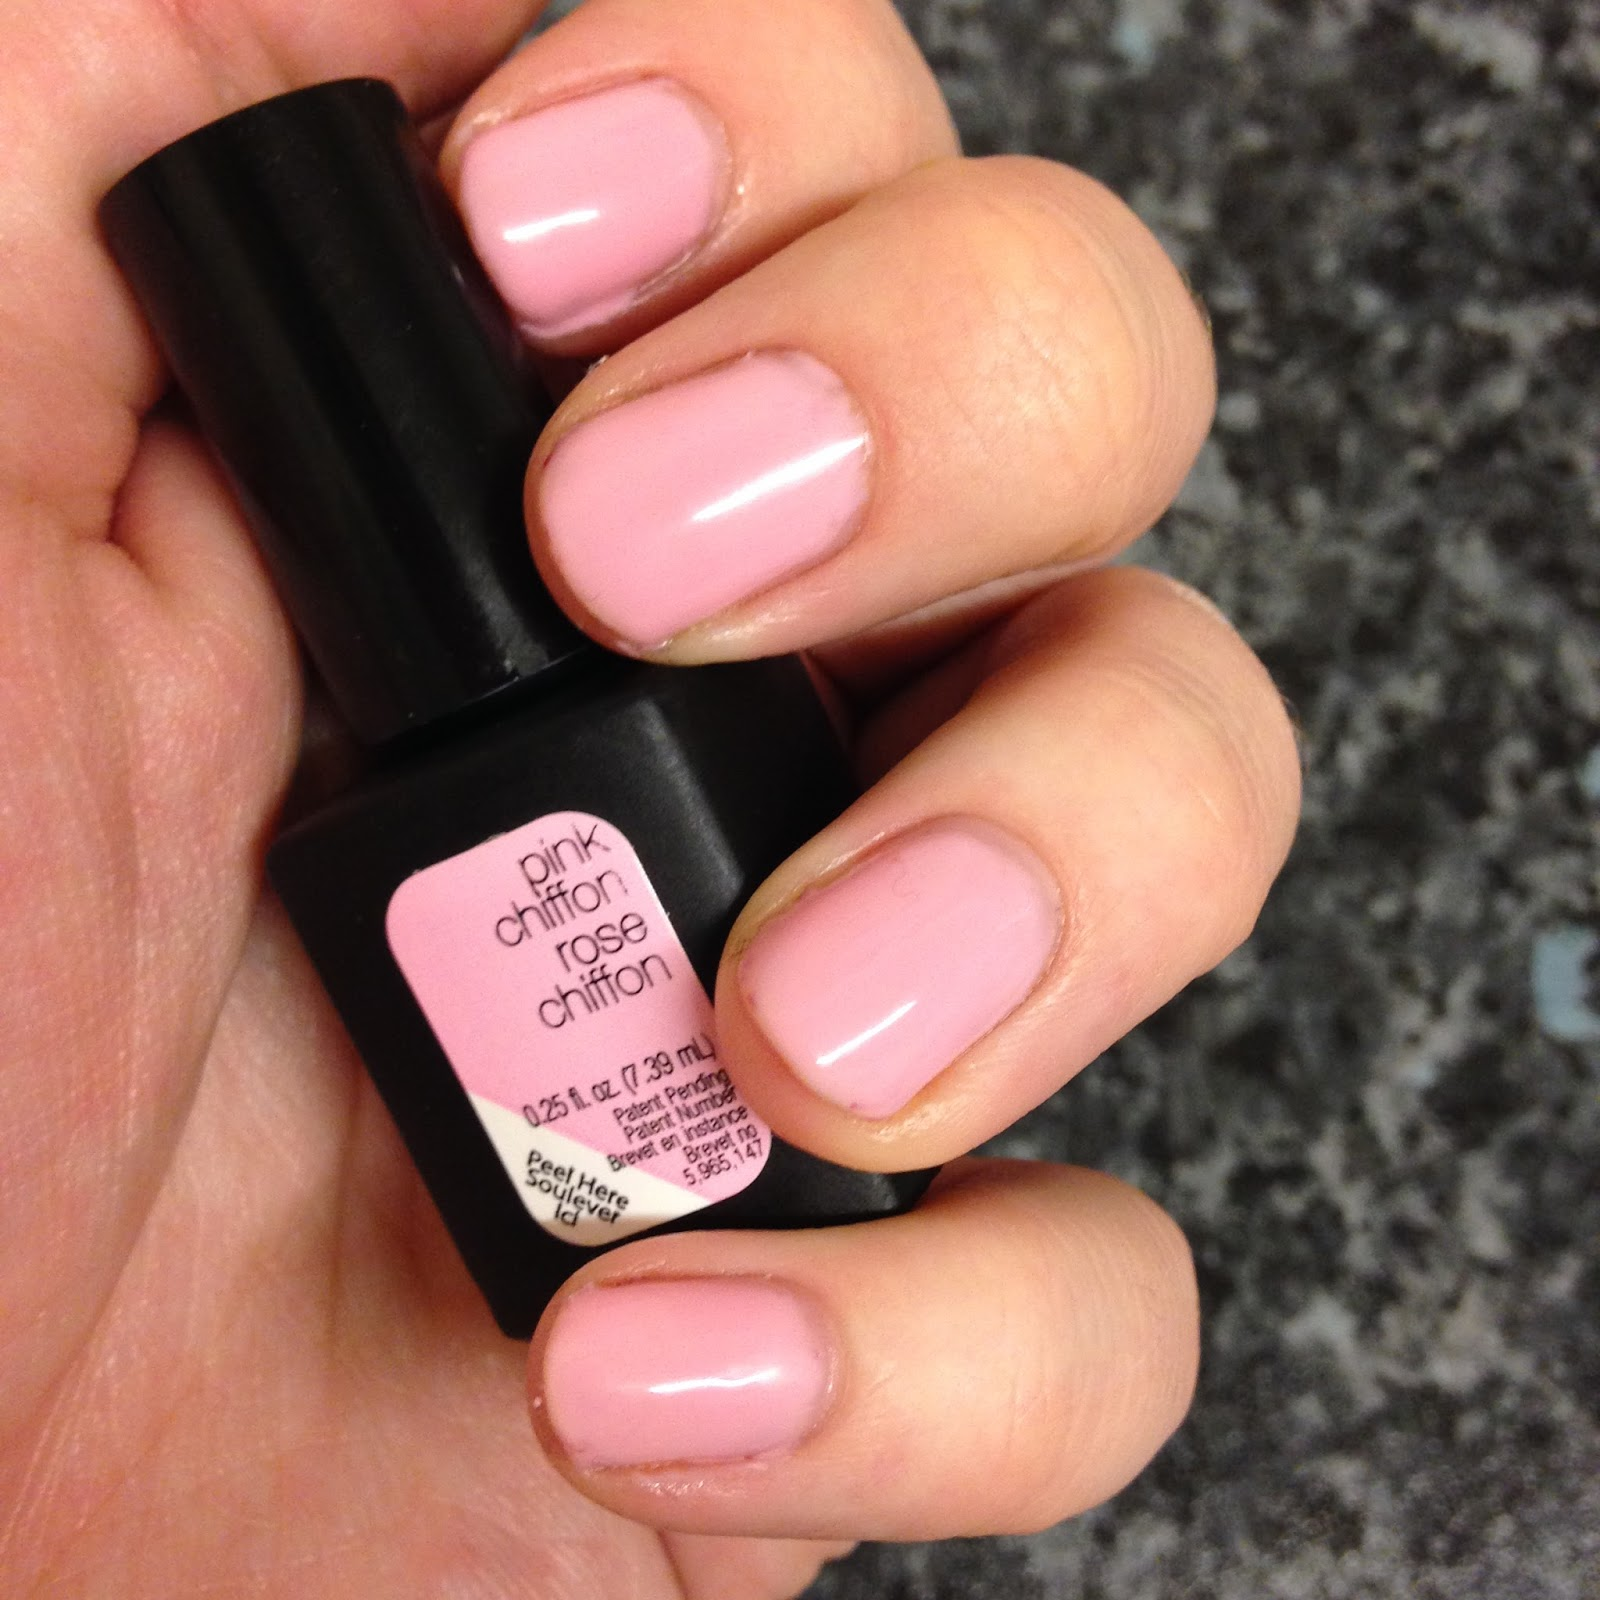 review sensationail gel nail kit, pink chiffon swatch